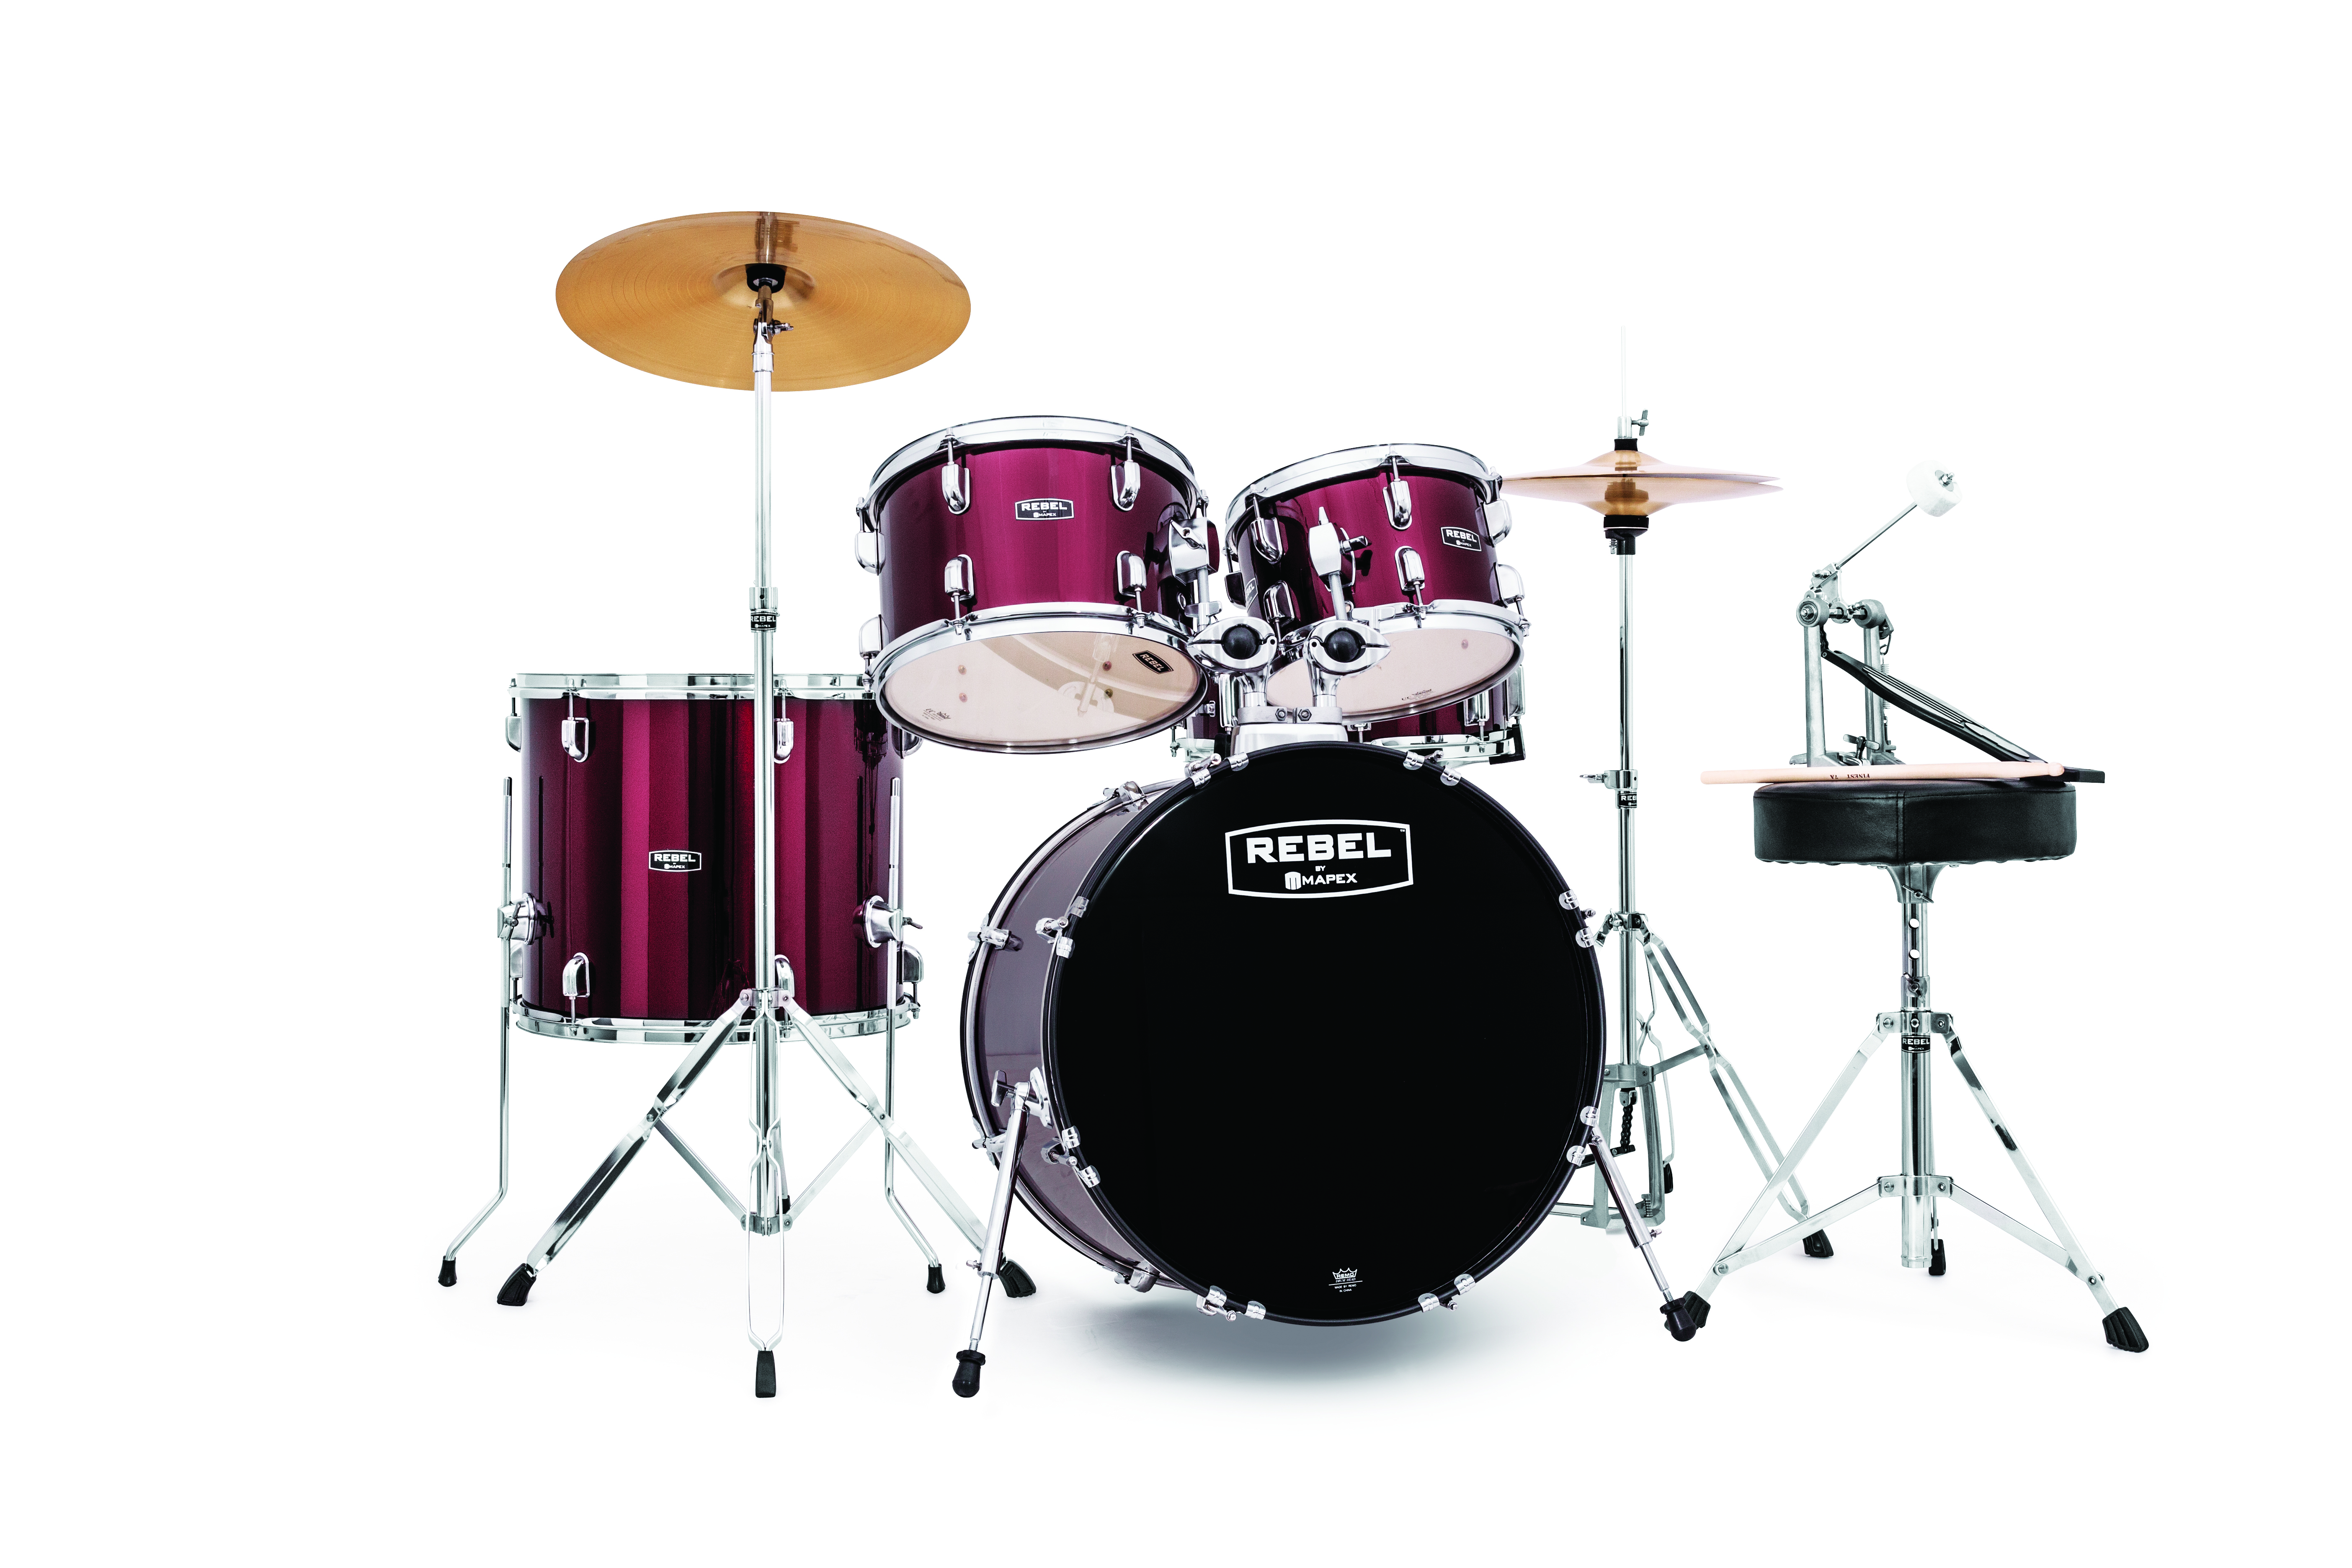 Mapex Rebel 5-piece Complete Jazz Set Up with Fast Size Toms - RB5044FTCDR - Dark Red